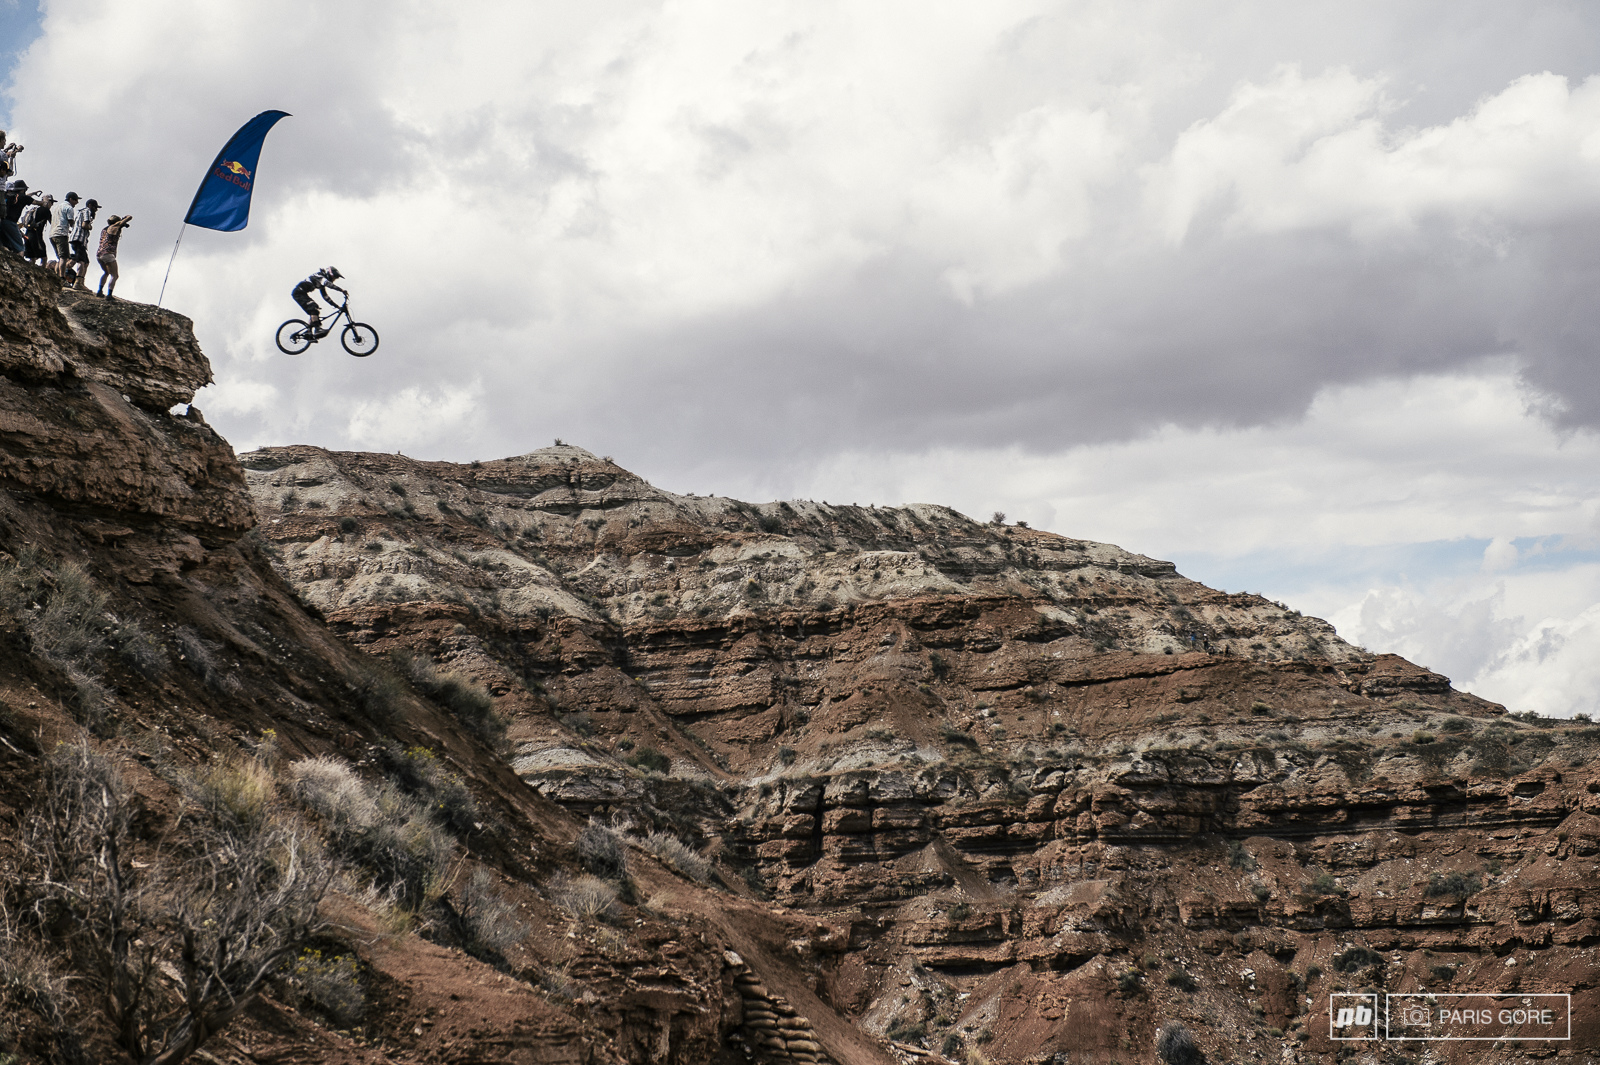 Aggy sending it during qualifying and putting down one of the most energetic runs of Rampage so far.